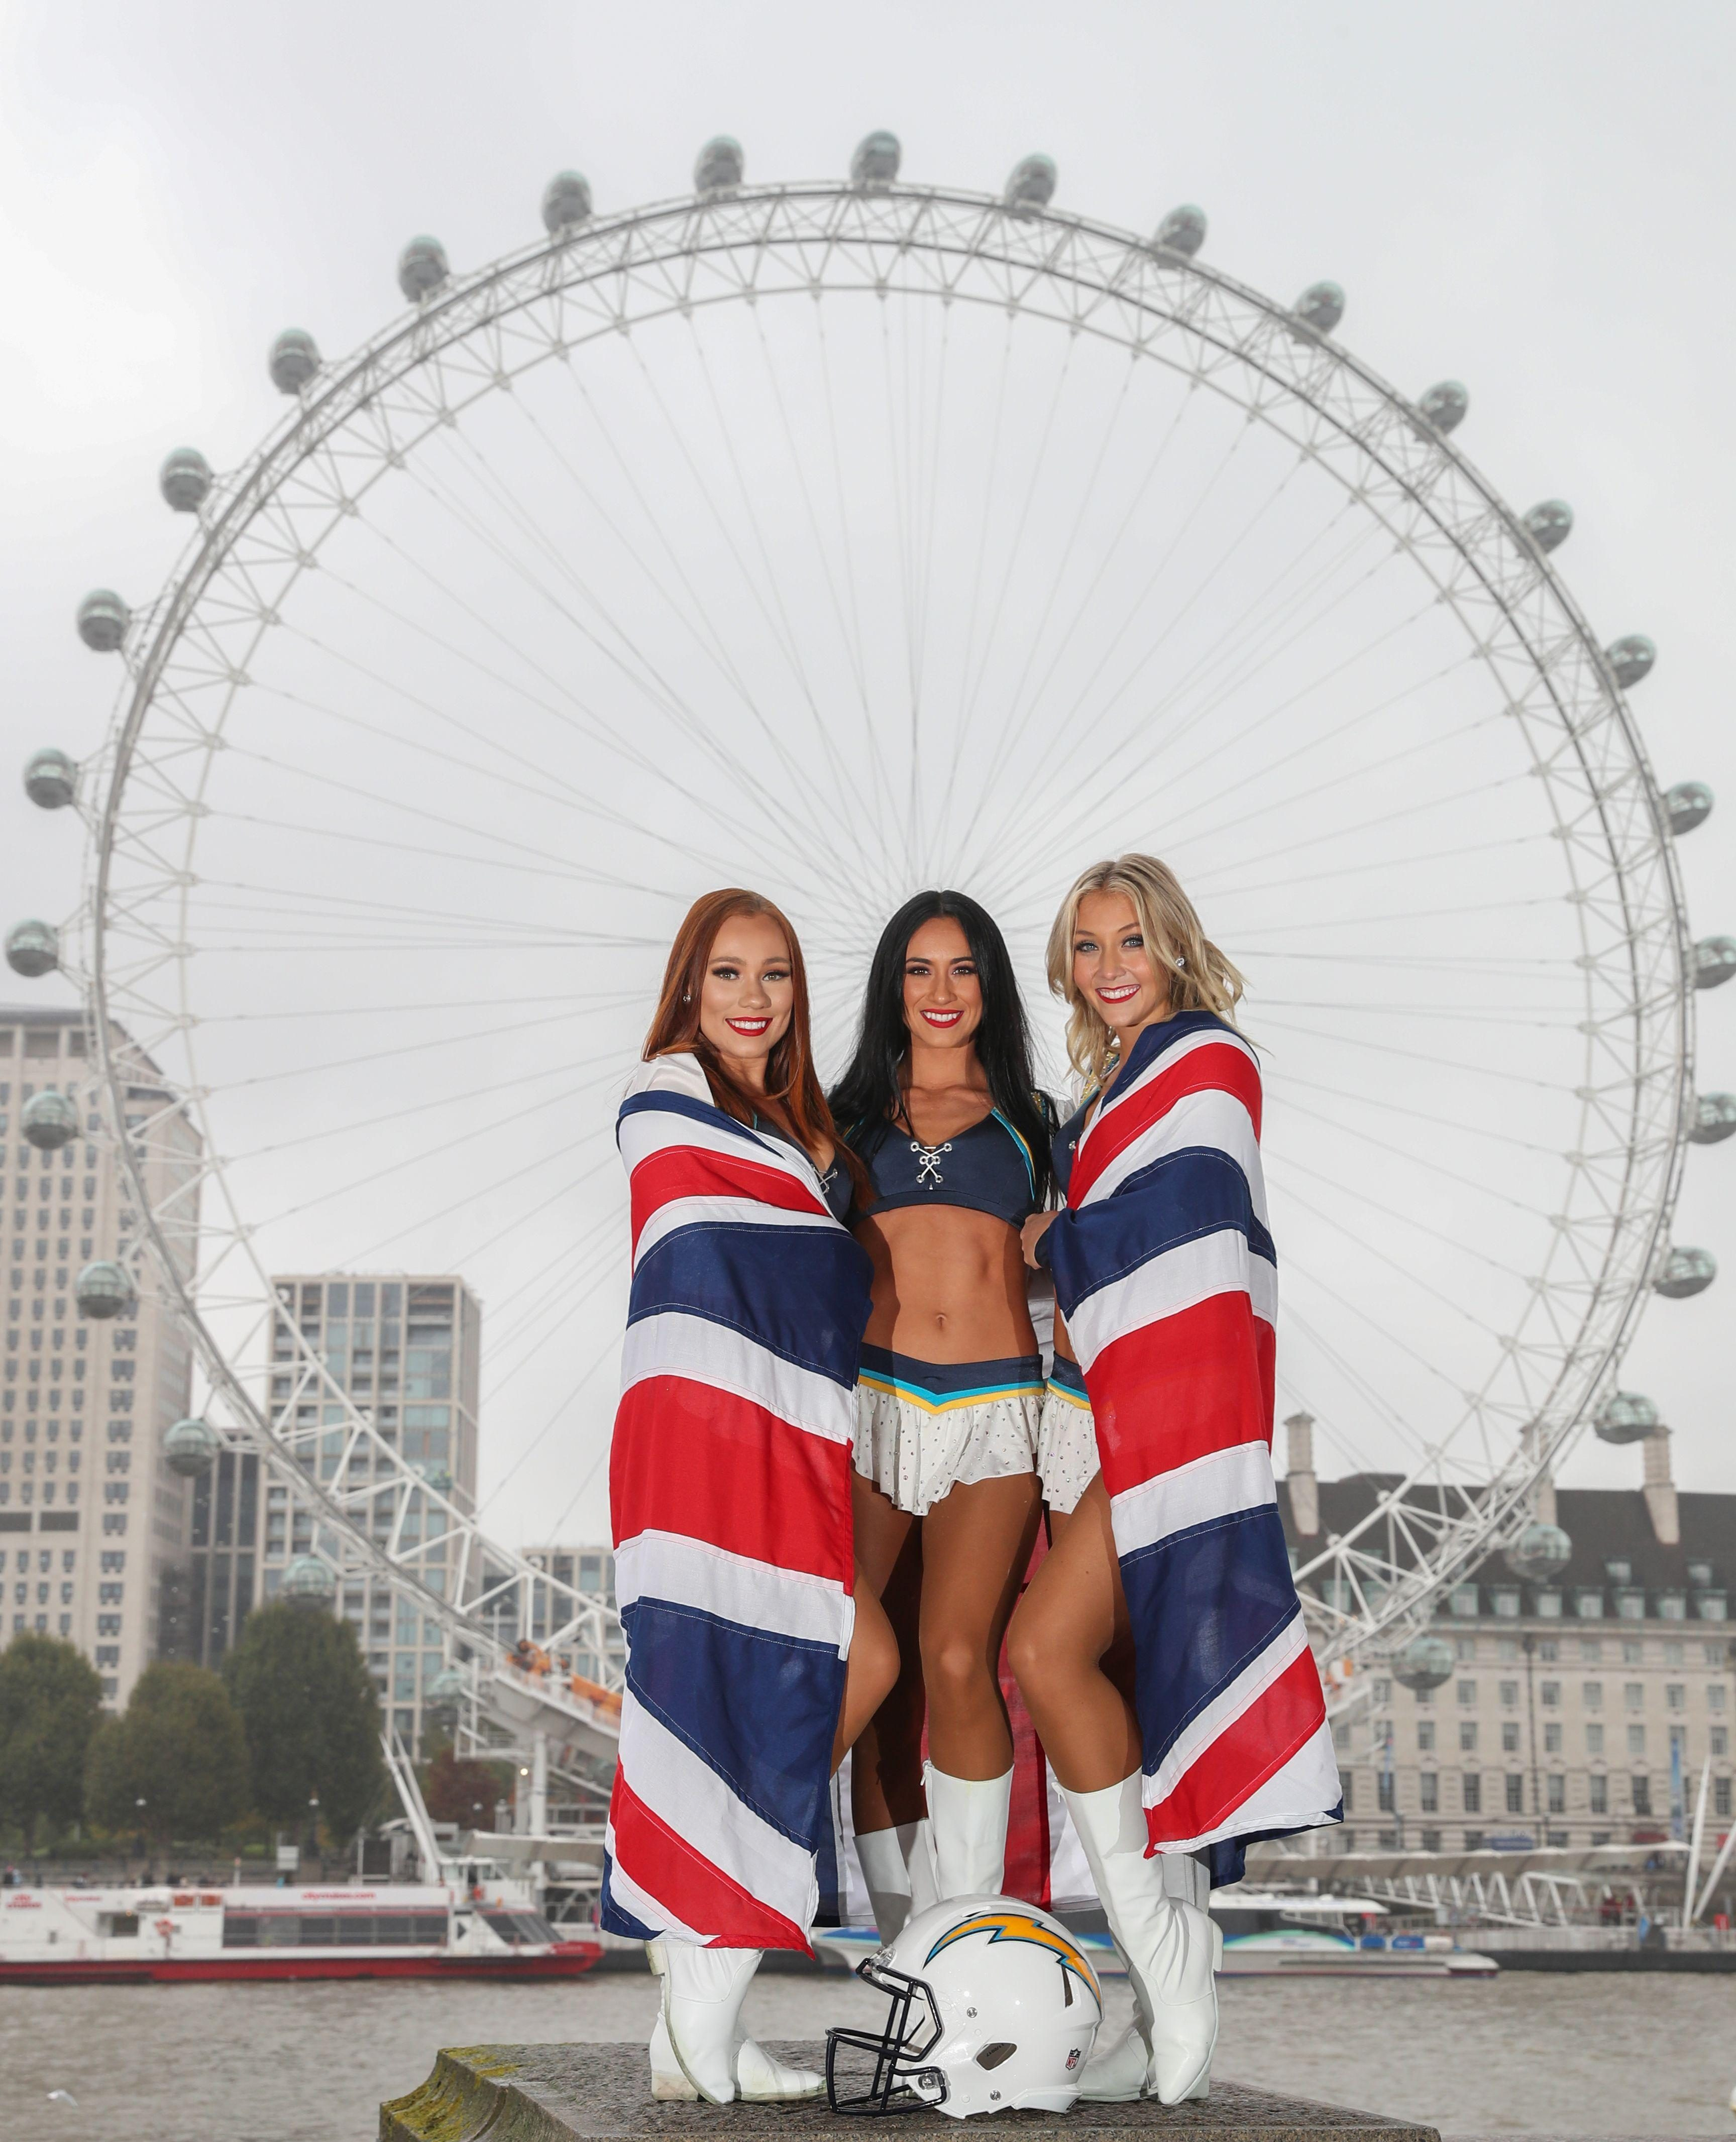 The Los Angeles Chargers cheerleaders brightened up a drizzly London today